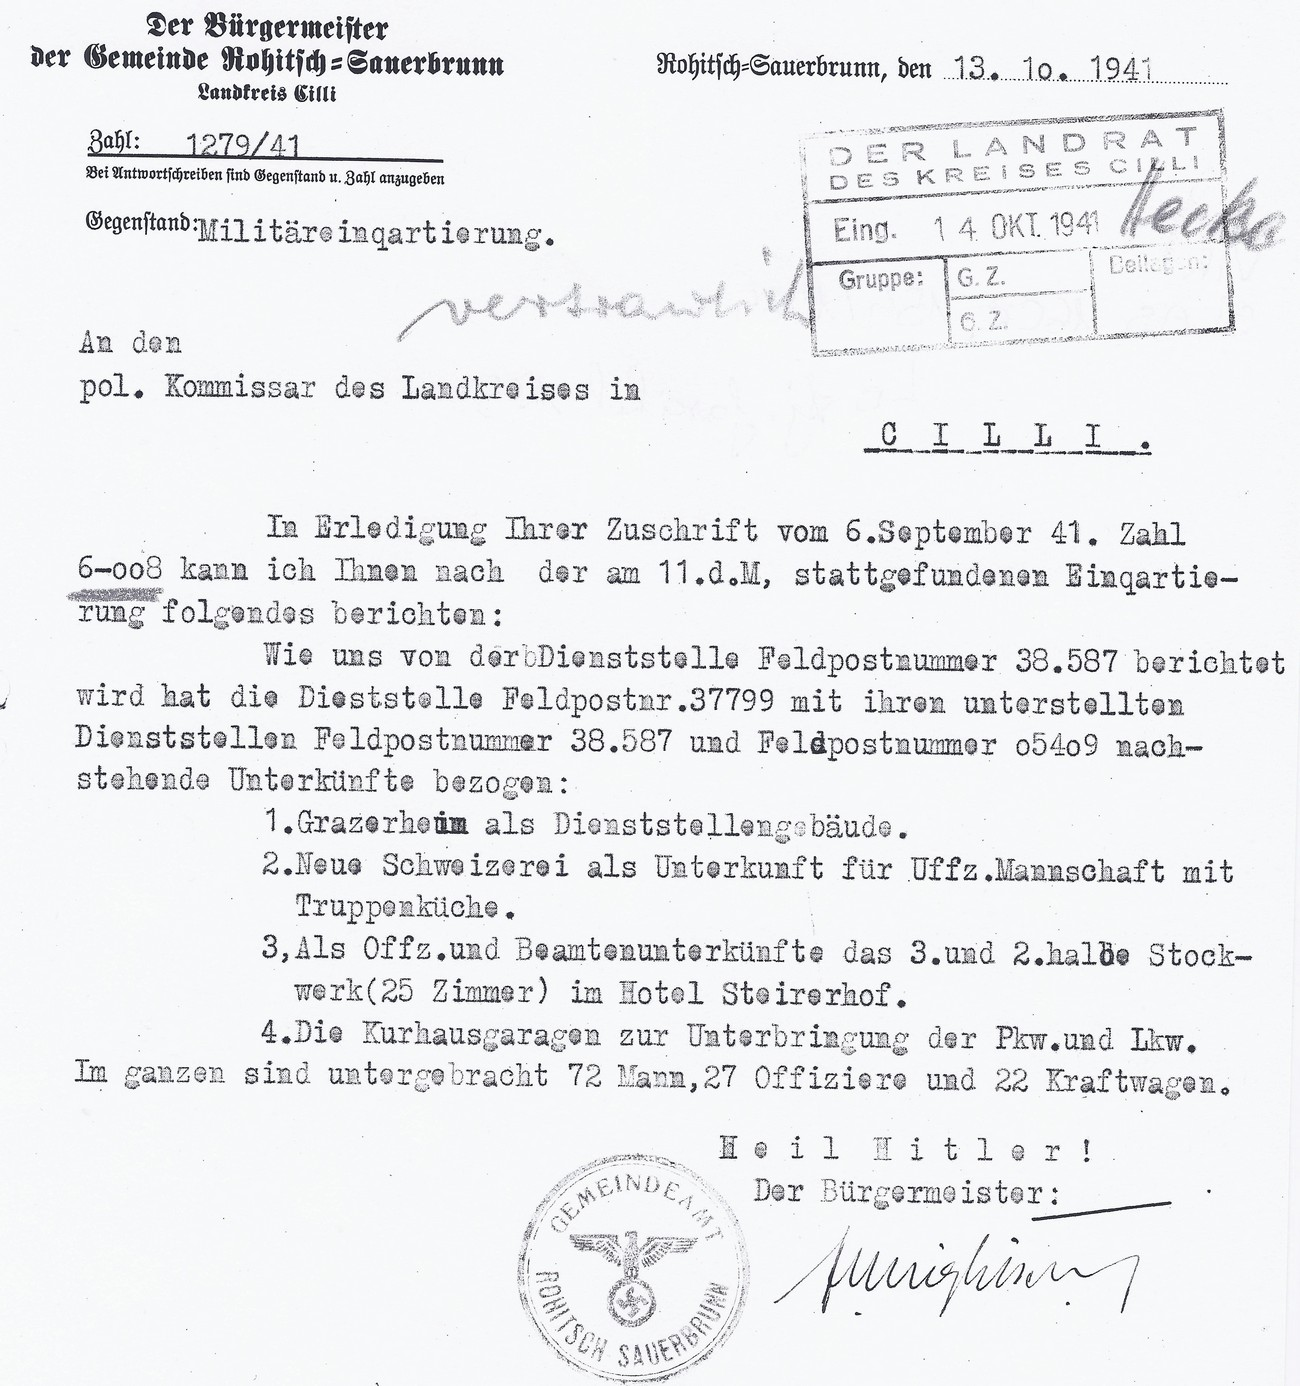 Report on the accommodation of military and clerical personnel in Rogaška Slatina. Miglitsch, the German mayor of Rogaška Slatina, reported on 13 October 1941 that 72 soldiers and 27 officers were staying at the health resort. They had 22 motor vehicles at their disposal, which were parked in the garages of Zdraviliški dom. German non-commissioned officers and the accompanying kitchen staff were staying at the Nova Švicarija Hotel, while officers and clerks were assigned 25 rooms on the second and third floors of the Štajerski dvor Hotel (called Jugoslovanski kralj before the German occupation). In February 1943, police hospitals were also set up in this hotel. In Ljubljanski dom, after the abolition of Komarek's political commissariat of Šmarje pri Jelšah, many offices of various departments were set up. Other accommodation facilities in the health resort, which also contained a night-time swimming pool, a bakery and its own theatre or cinema, were intended for select guests from the countries occupied by the Third Reich. Archives of the RS.